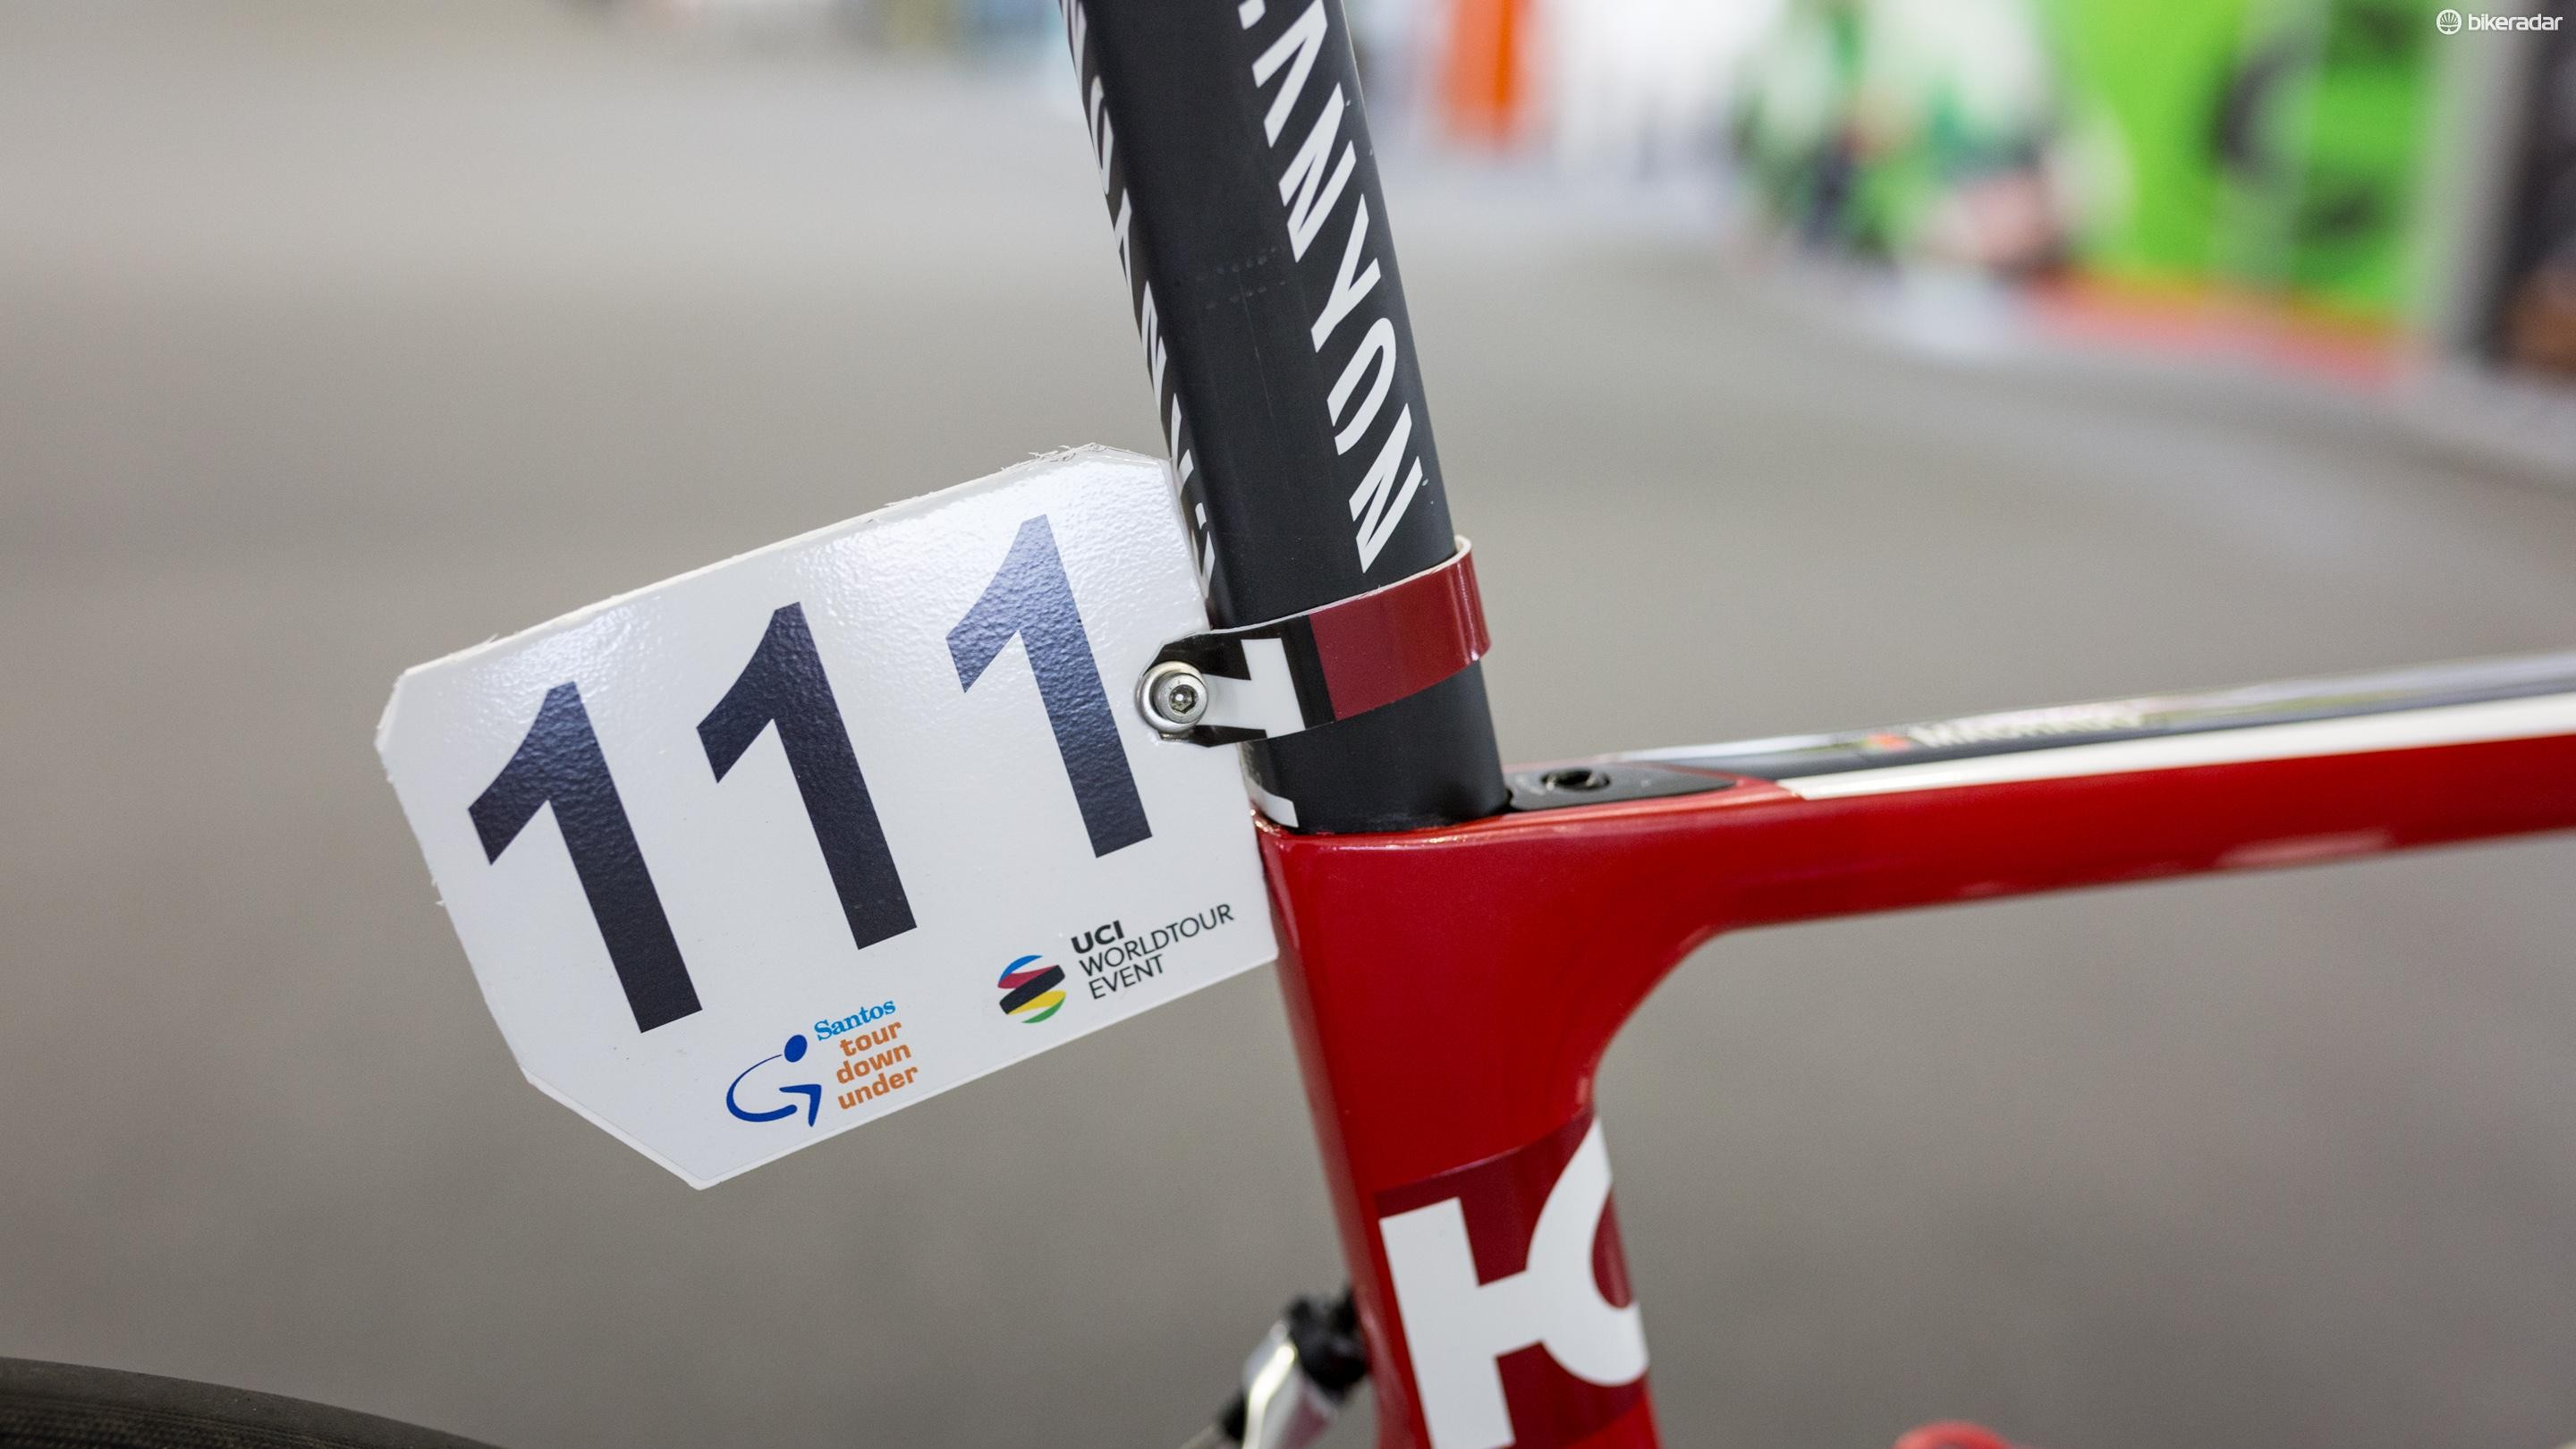 The Katusha-Alpecin mechanics repurposed a water bottle into a number holder